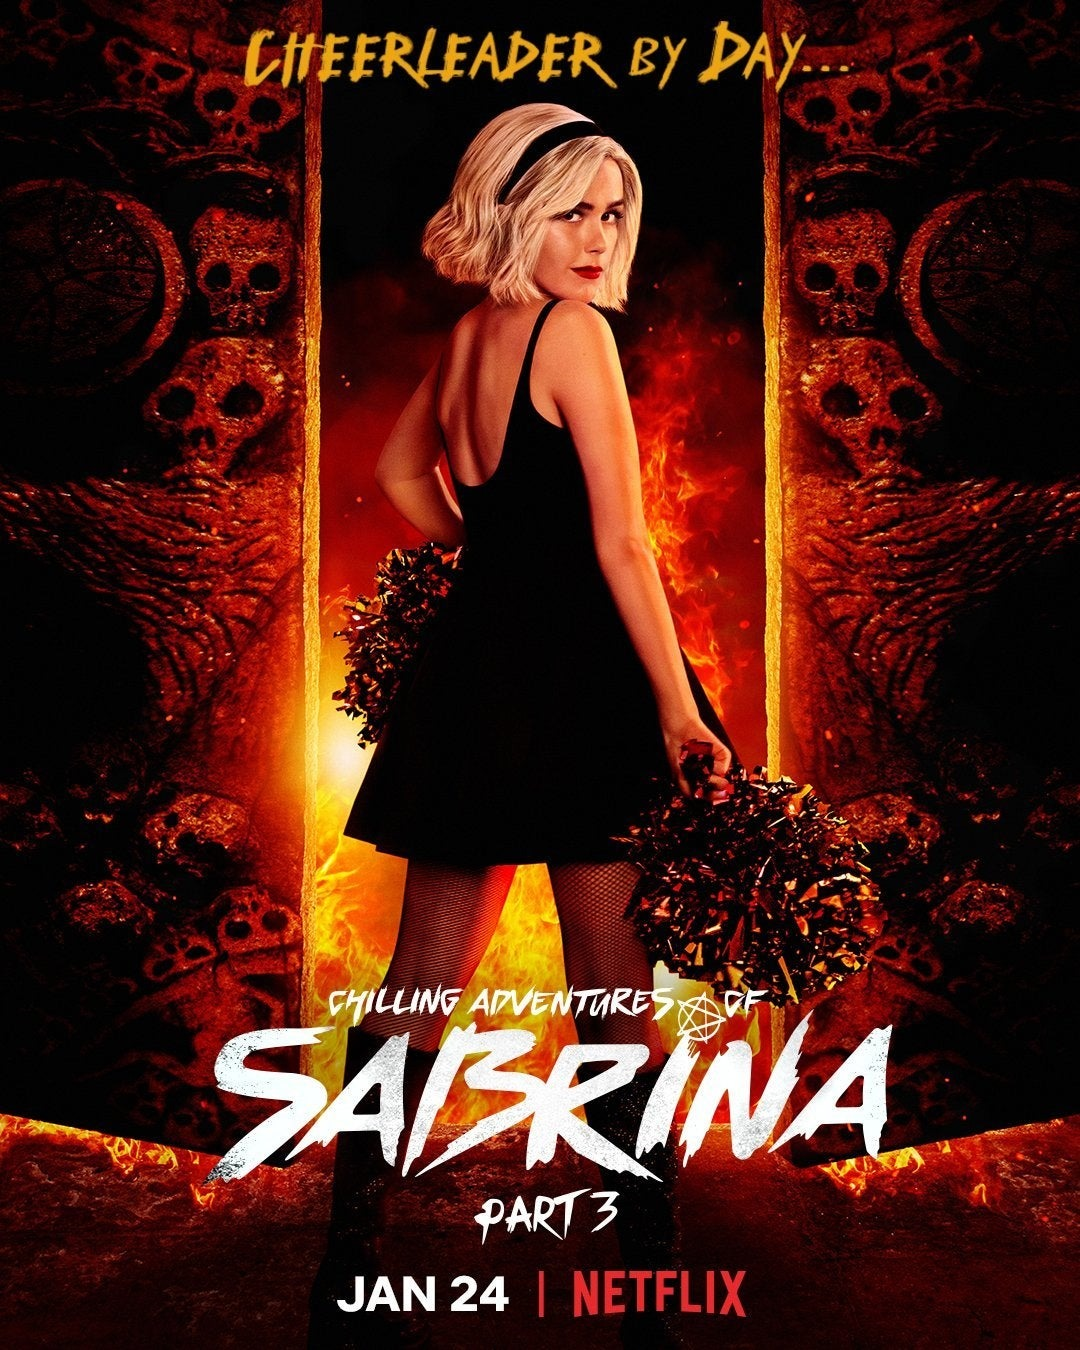 Chilling Adventures of Sabrina (2020) S03 Complete – [Hindi+English] – 720p | 480p NF.WEB-DL x264 AAC